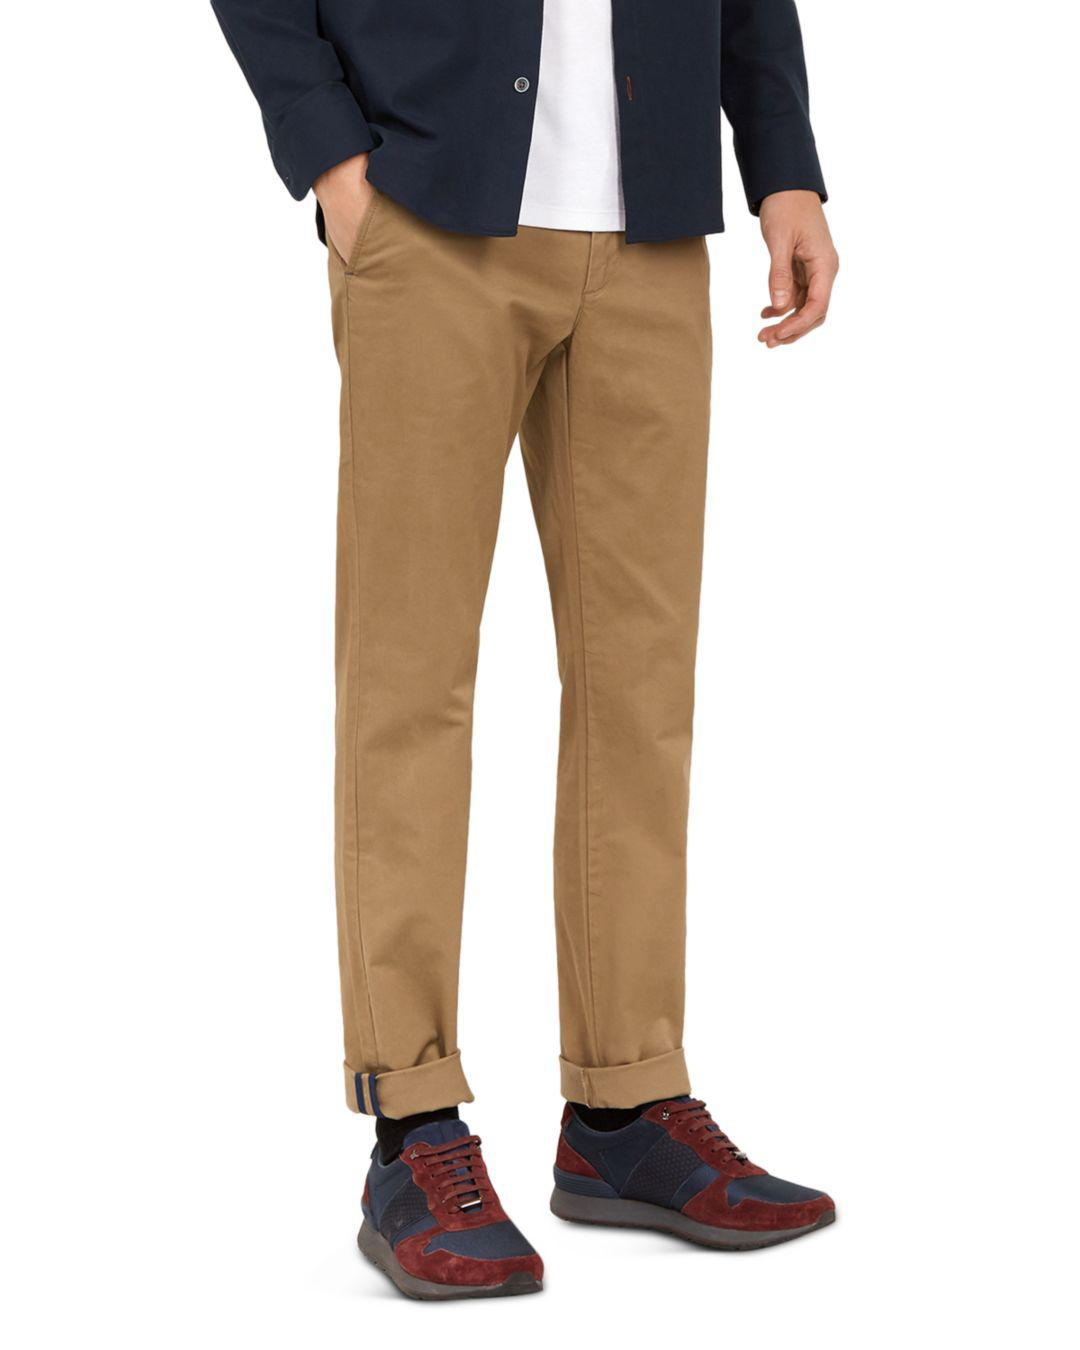 32510b9ce Lyst - Ted Baker Seenchi Slim Fit Chinos in Natural for Men